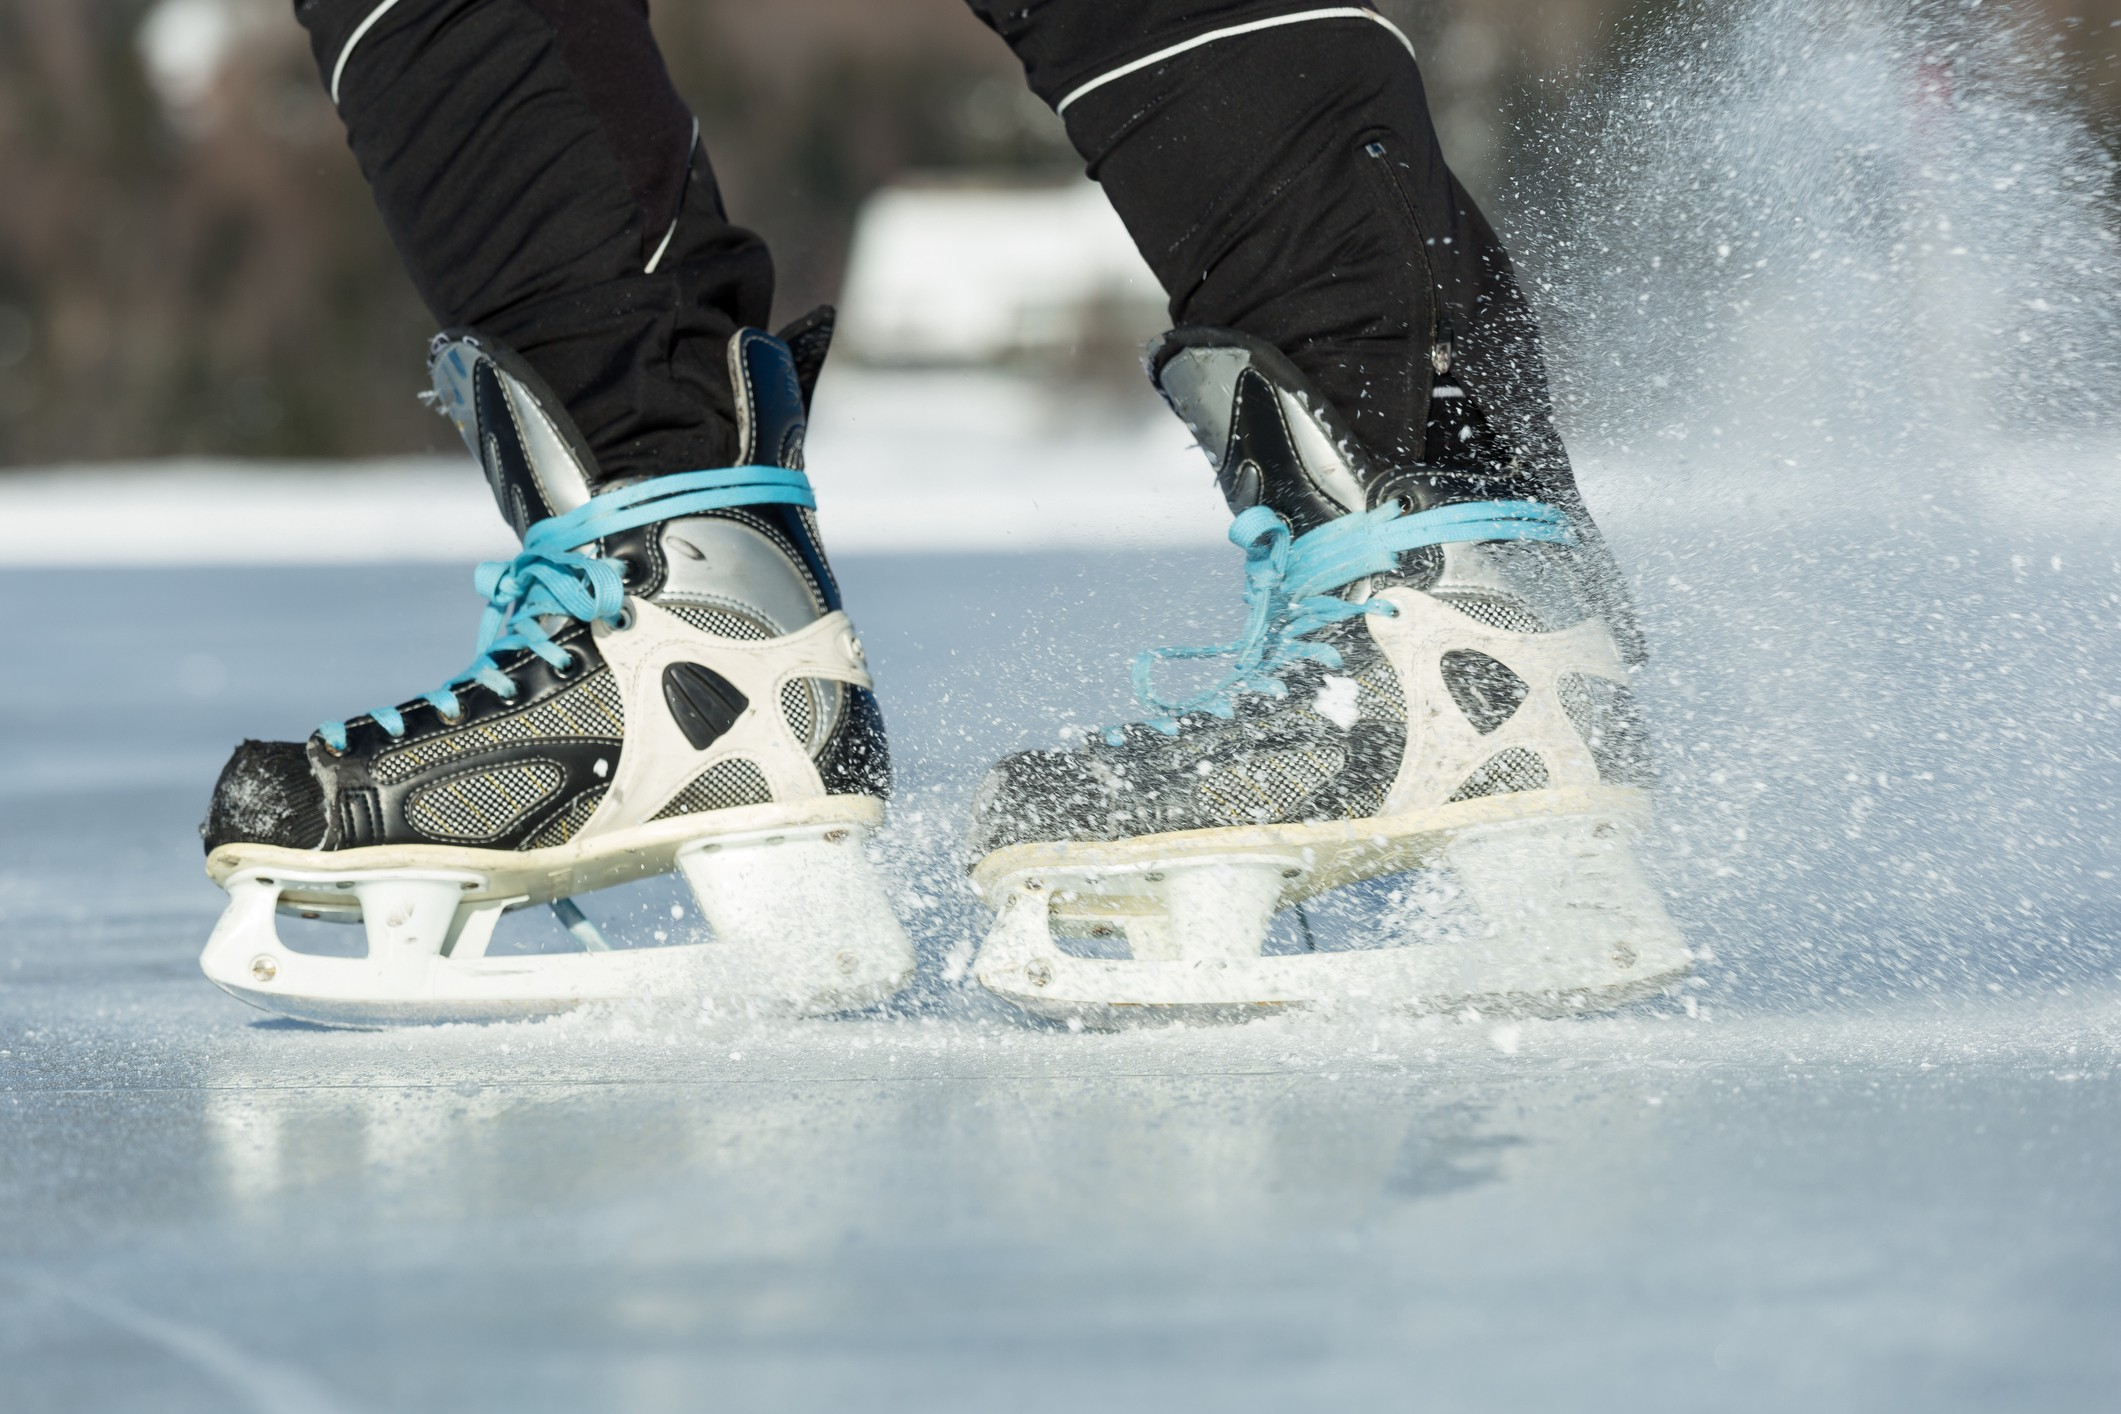 Science Of Ice Skating The Very First Ice Skates Were Made In By Bayer Us The Beaker Life